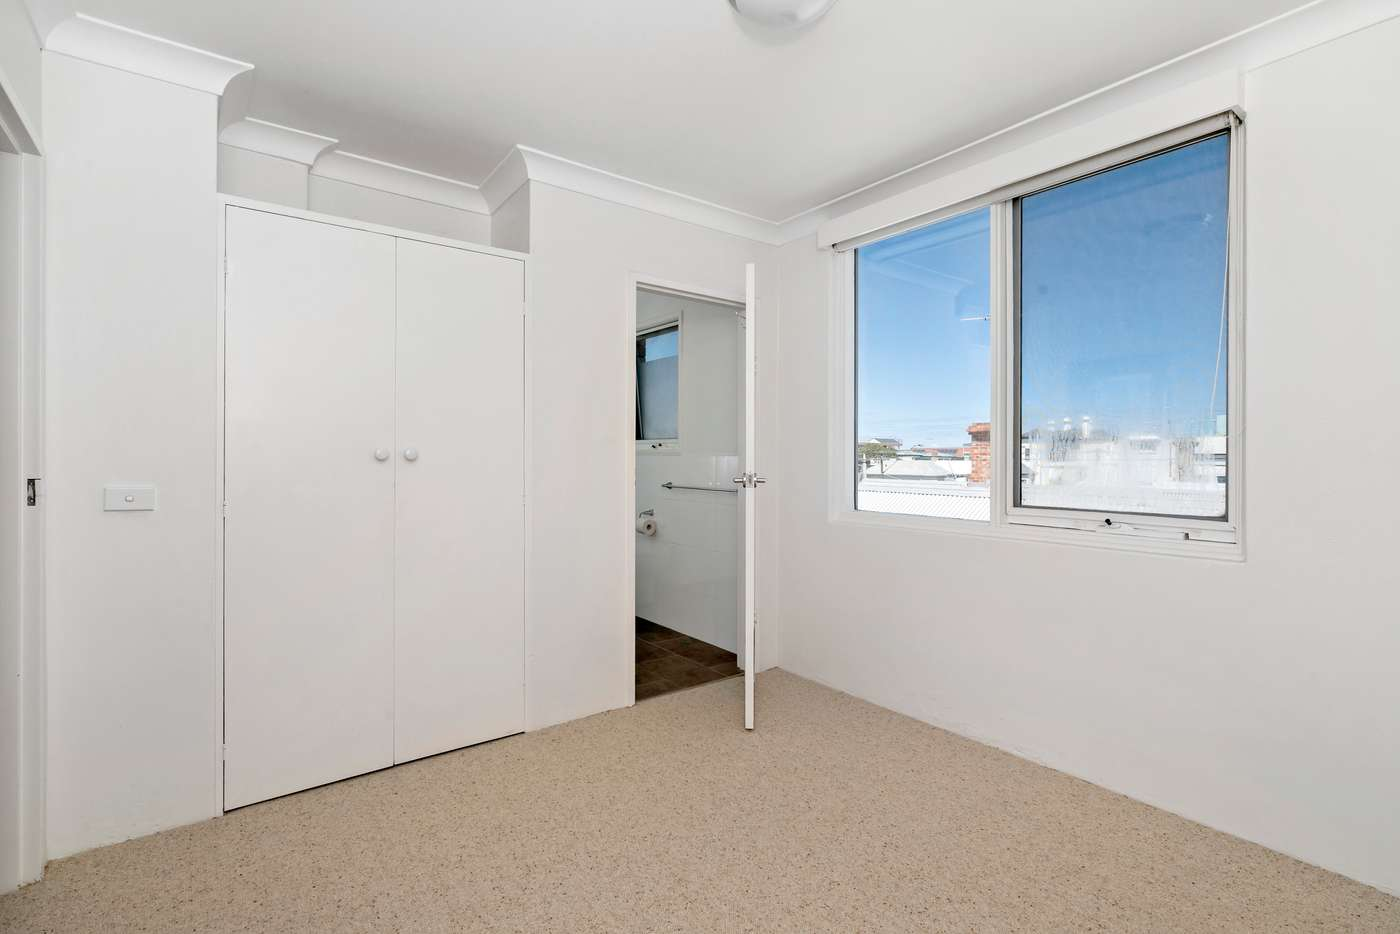 Sixth view of Homely apartment listing, 4/24 Foote Street, Albert Park VIC 3206